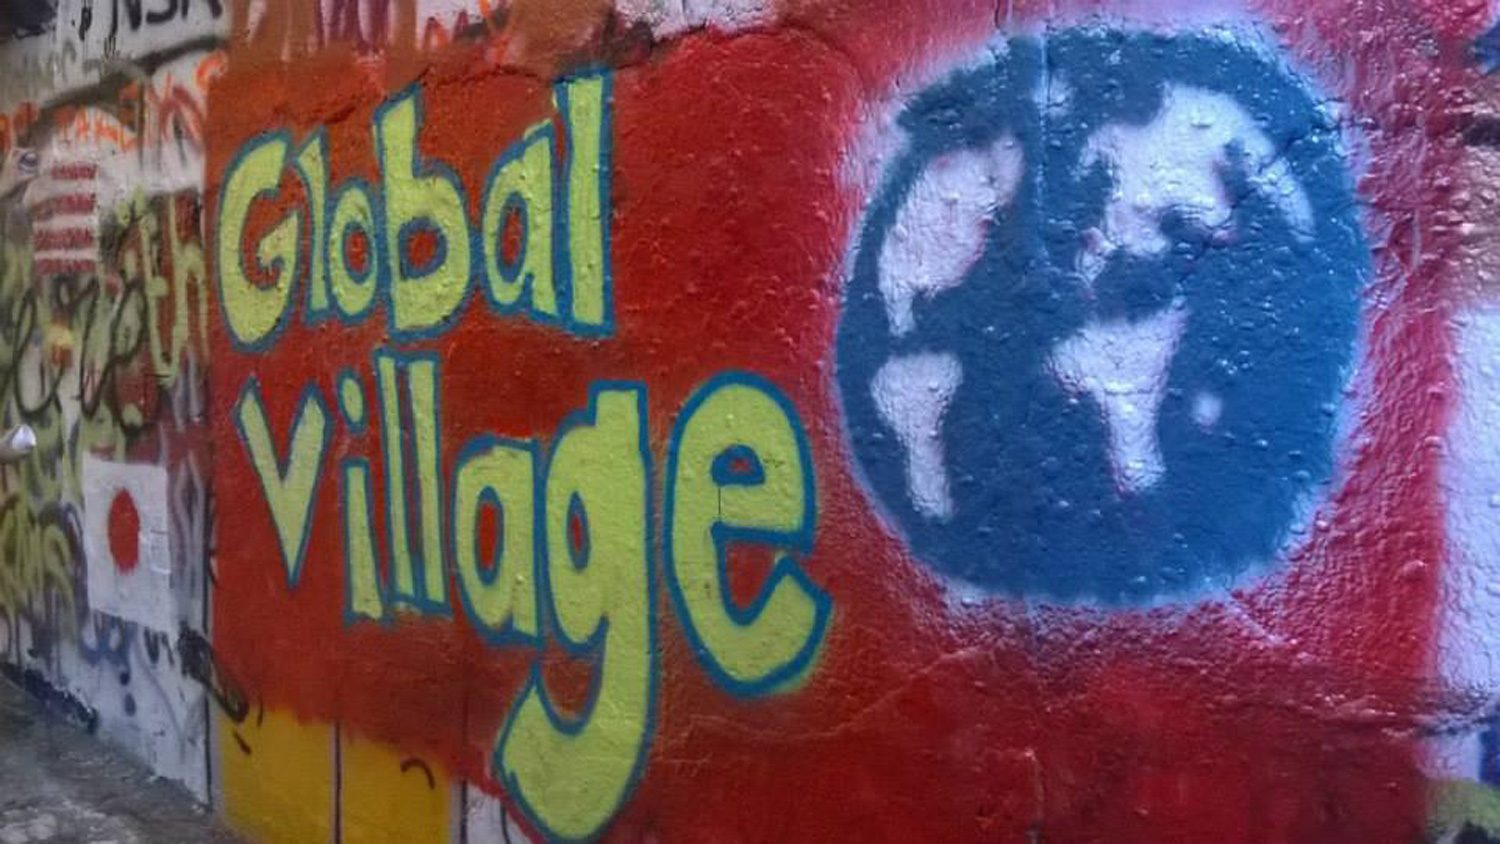 Global Village sign on Free Expression Tunnel